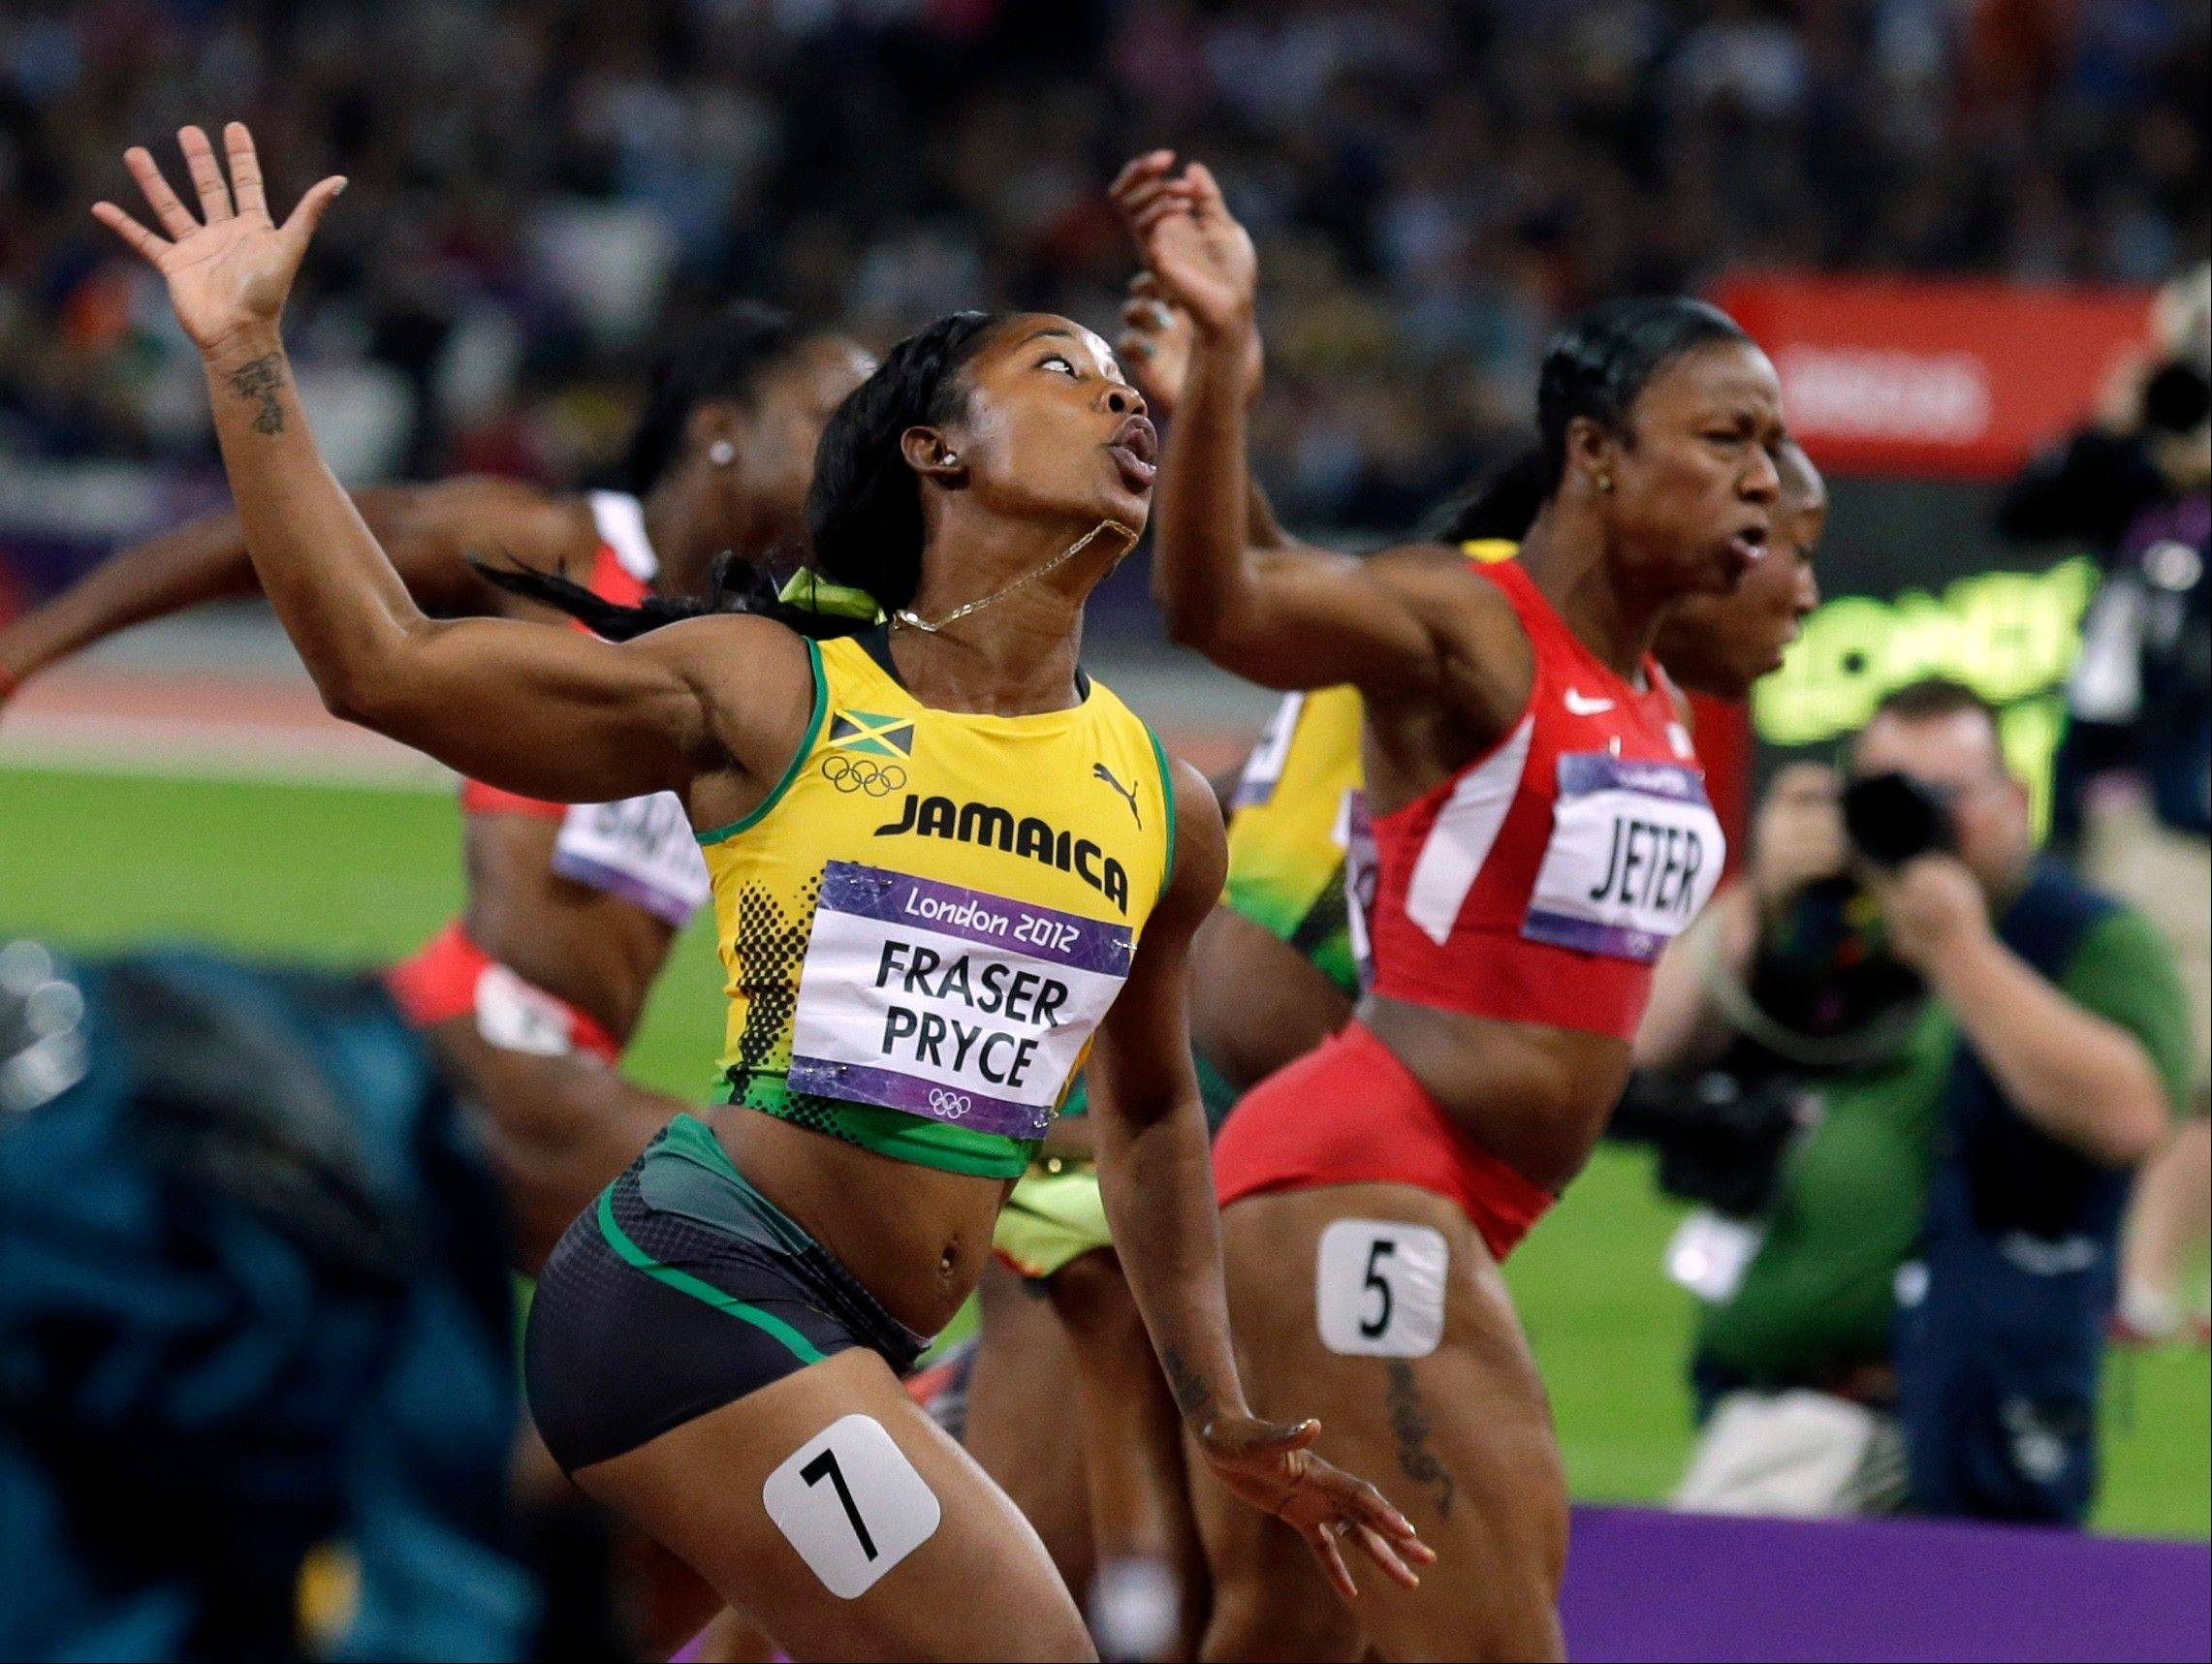 Jamaica's Shelly-Ann Fraser-Pryce, left, crosses the finish line ahead of the United States' Carmelita Jeter Saturday during the women's 100-meter final during at the Olympic Stadium. Fraser-Pryce won the gold, Jeter finished second.